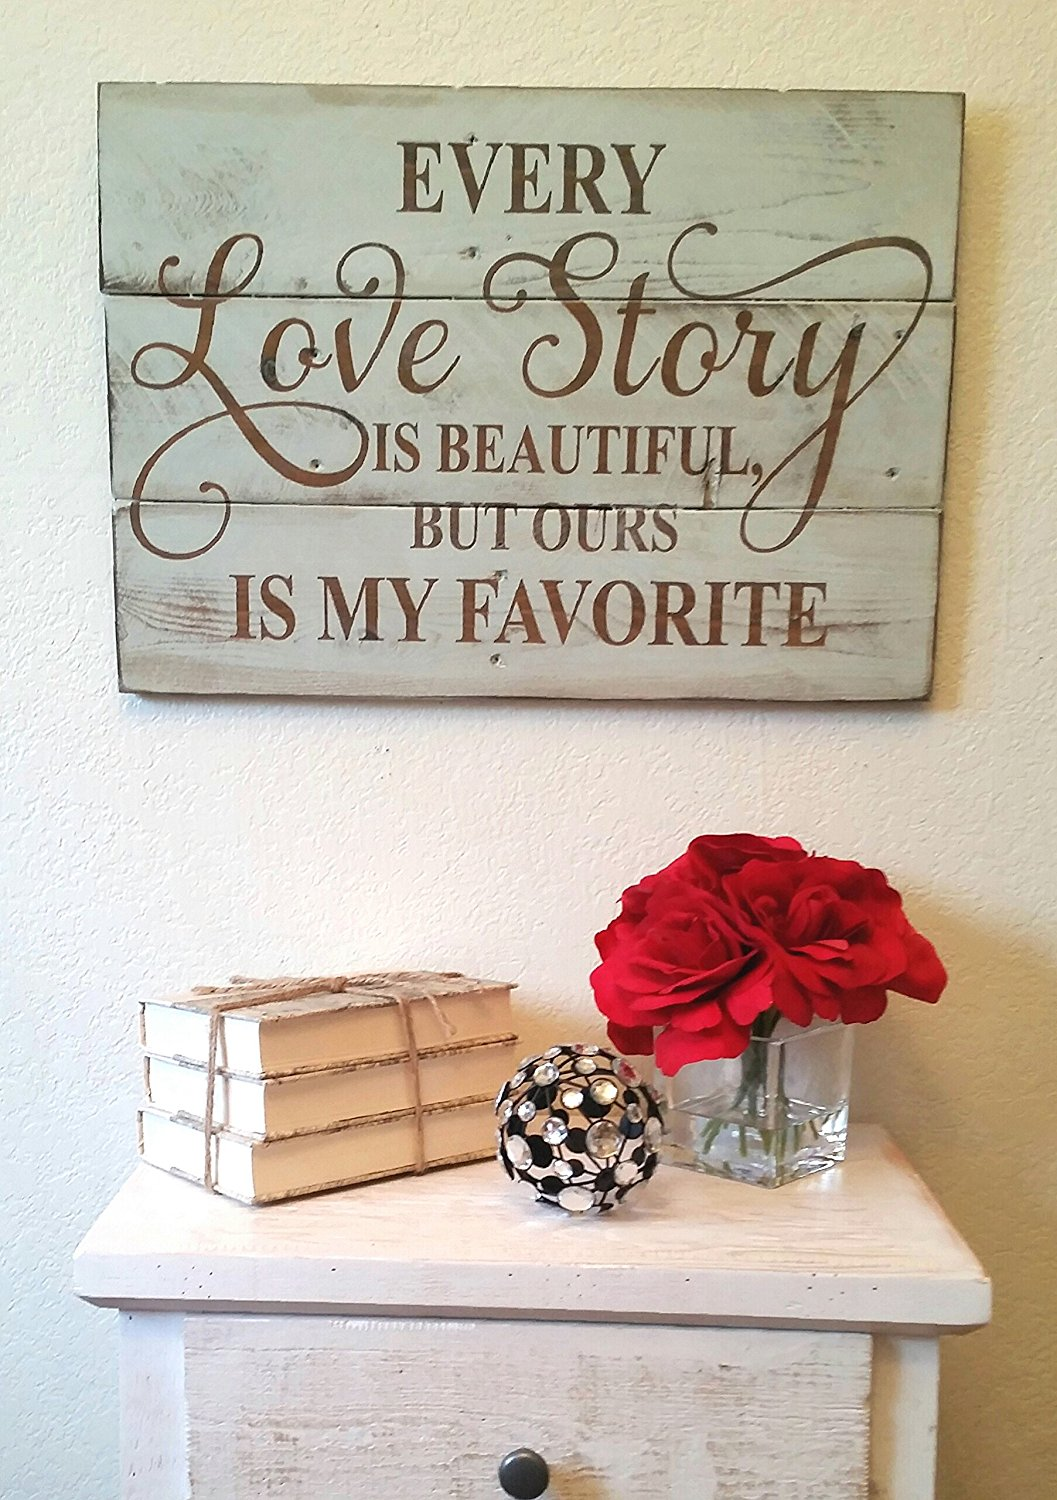 Love story quote wall hanging - cute for a rustic / shabby chic style bedroom or any room - diy rustic decor idea